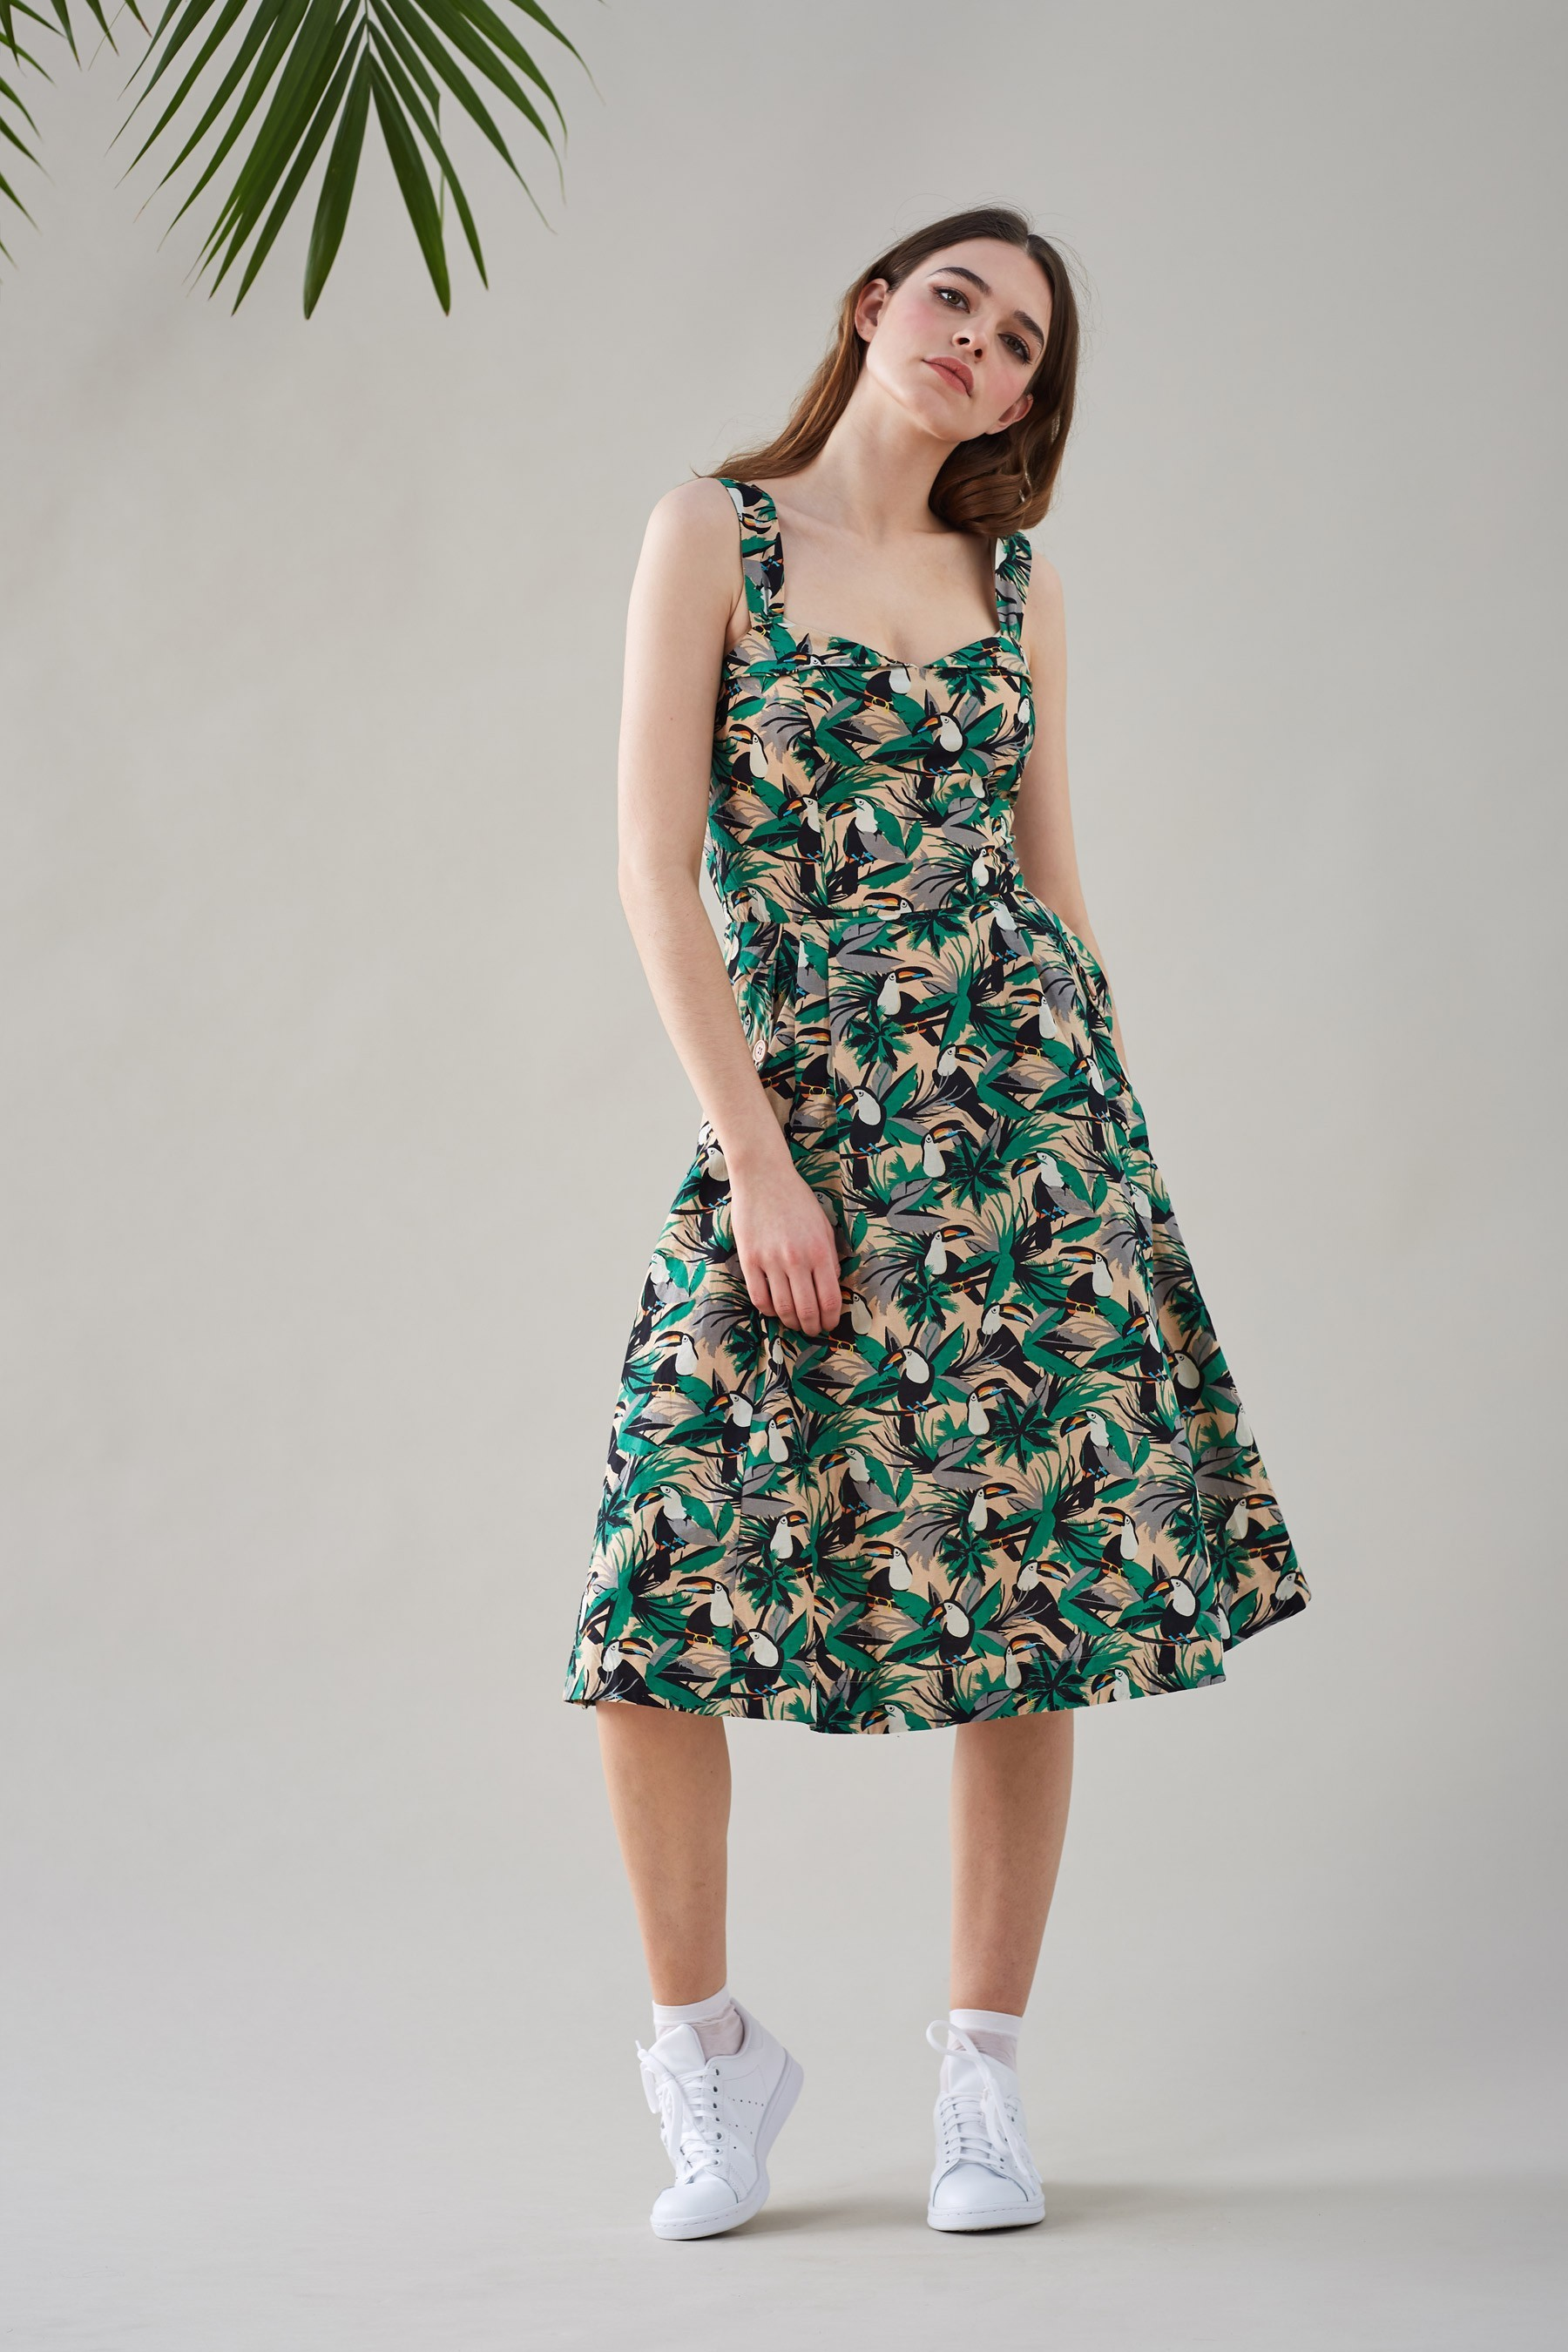 Toucan Print Summer Dress